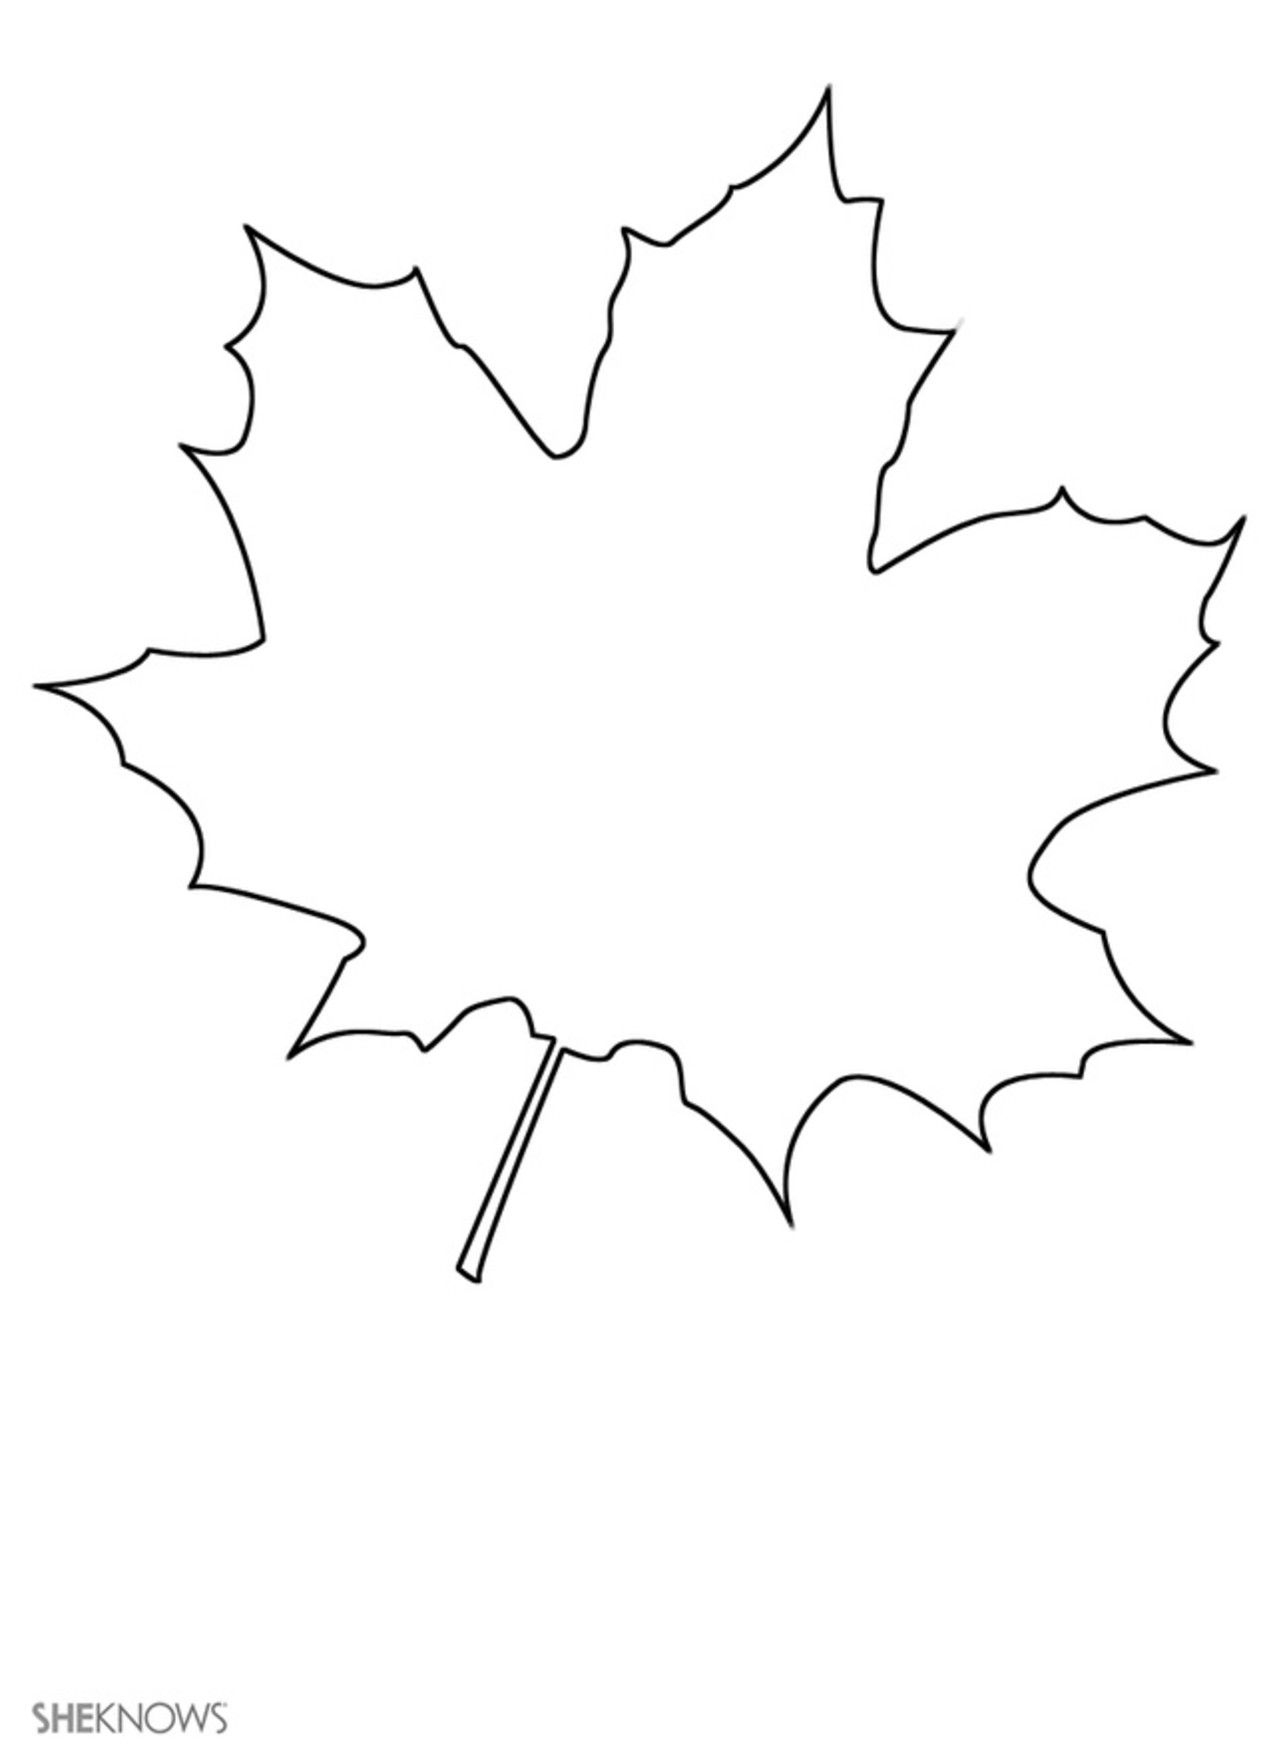 Print These 17 Craft Templates For Kids For Hours & Hours Of Fun - Free Printable Leaf Template